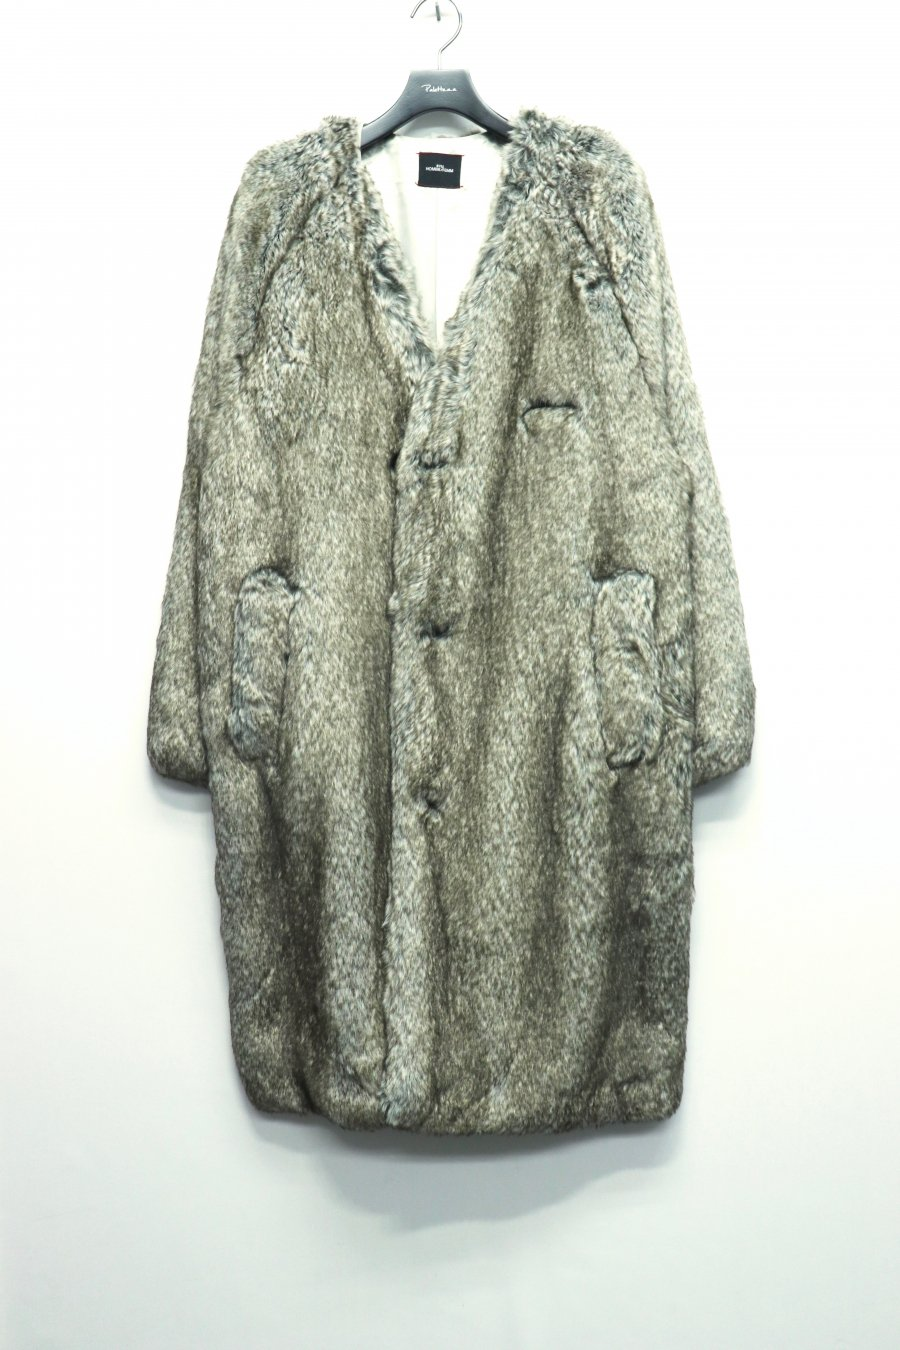 SYU.HOMME/FEMM  Nocollor fur coat to SDGz(Brown)<img class='new_mark_img2' src='https://img.shop-pro.jp/img/new/icons15.gif' style='border:none;display:inline;margin:0px;padding:0px;width:auto;' />